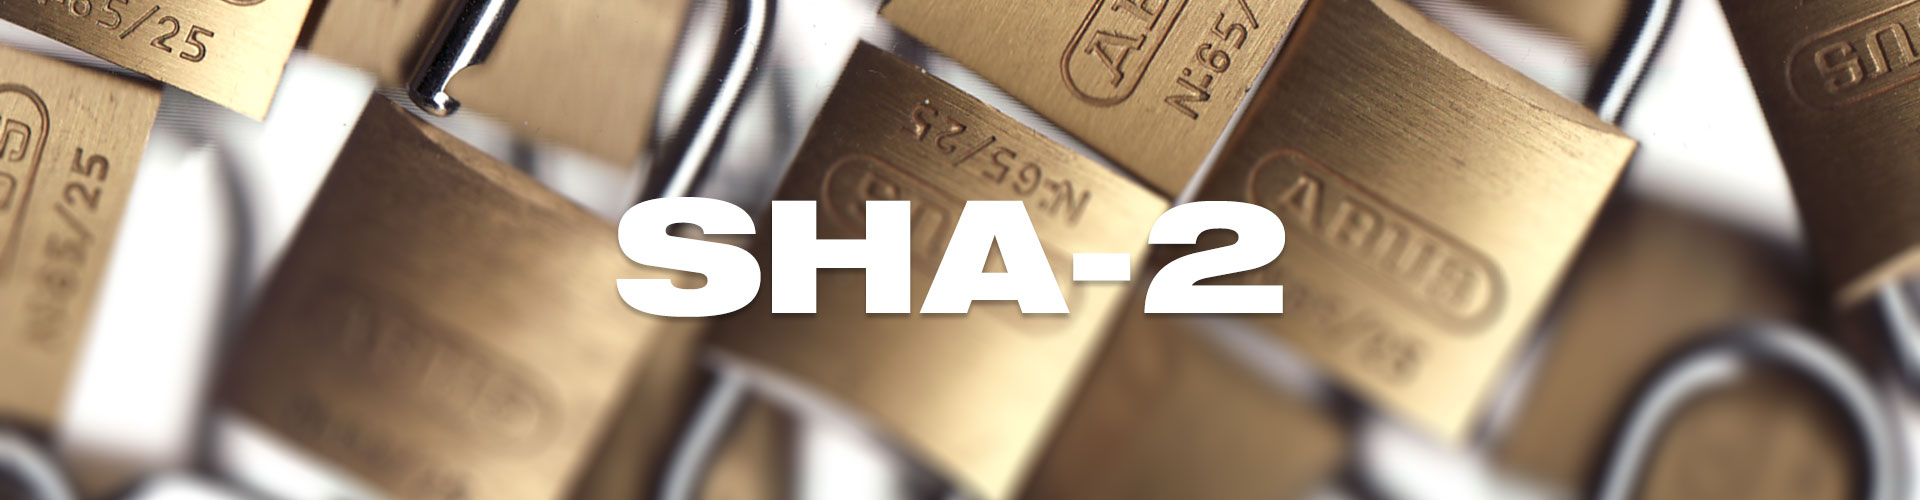 Sha 1 has been compromised switch to sha 2 quick eurodns recently launched ssl certificates a hugely significant step in its mission to secure the internet if you want people to buy your products xflitez Image collections